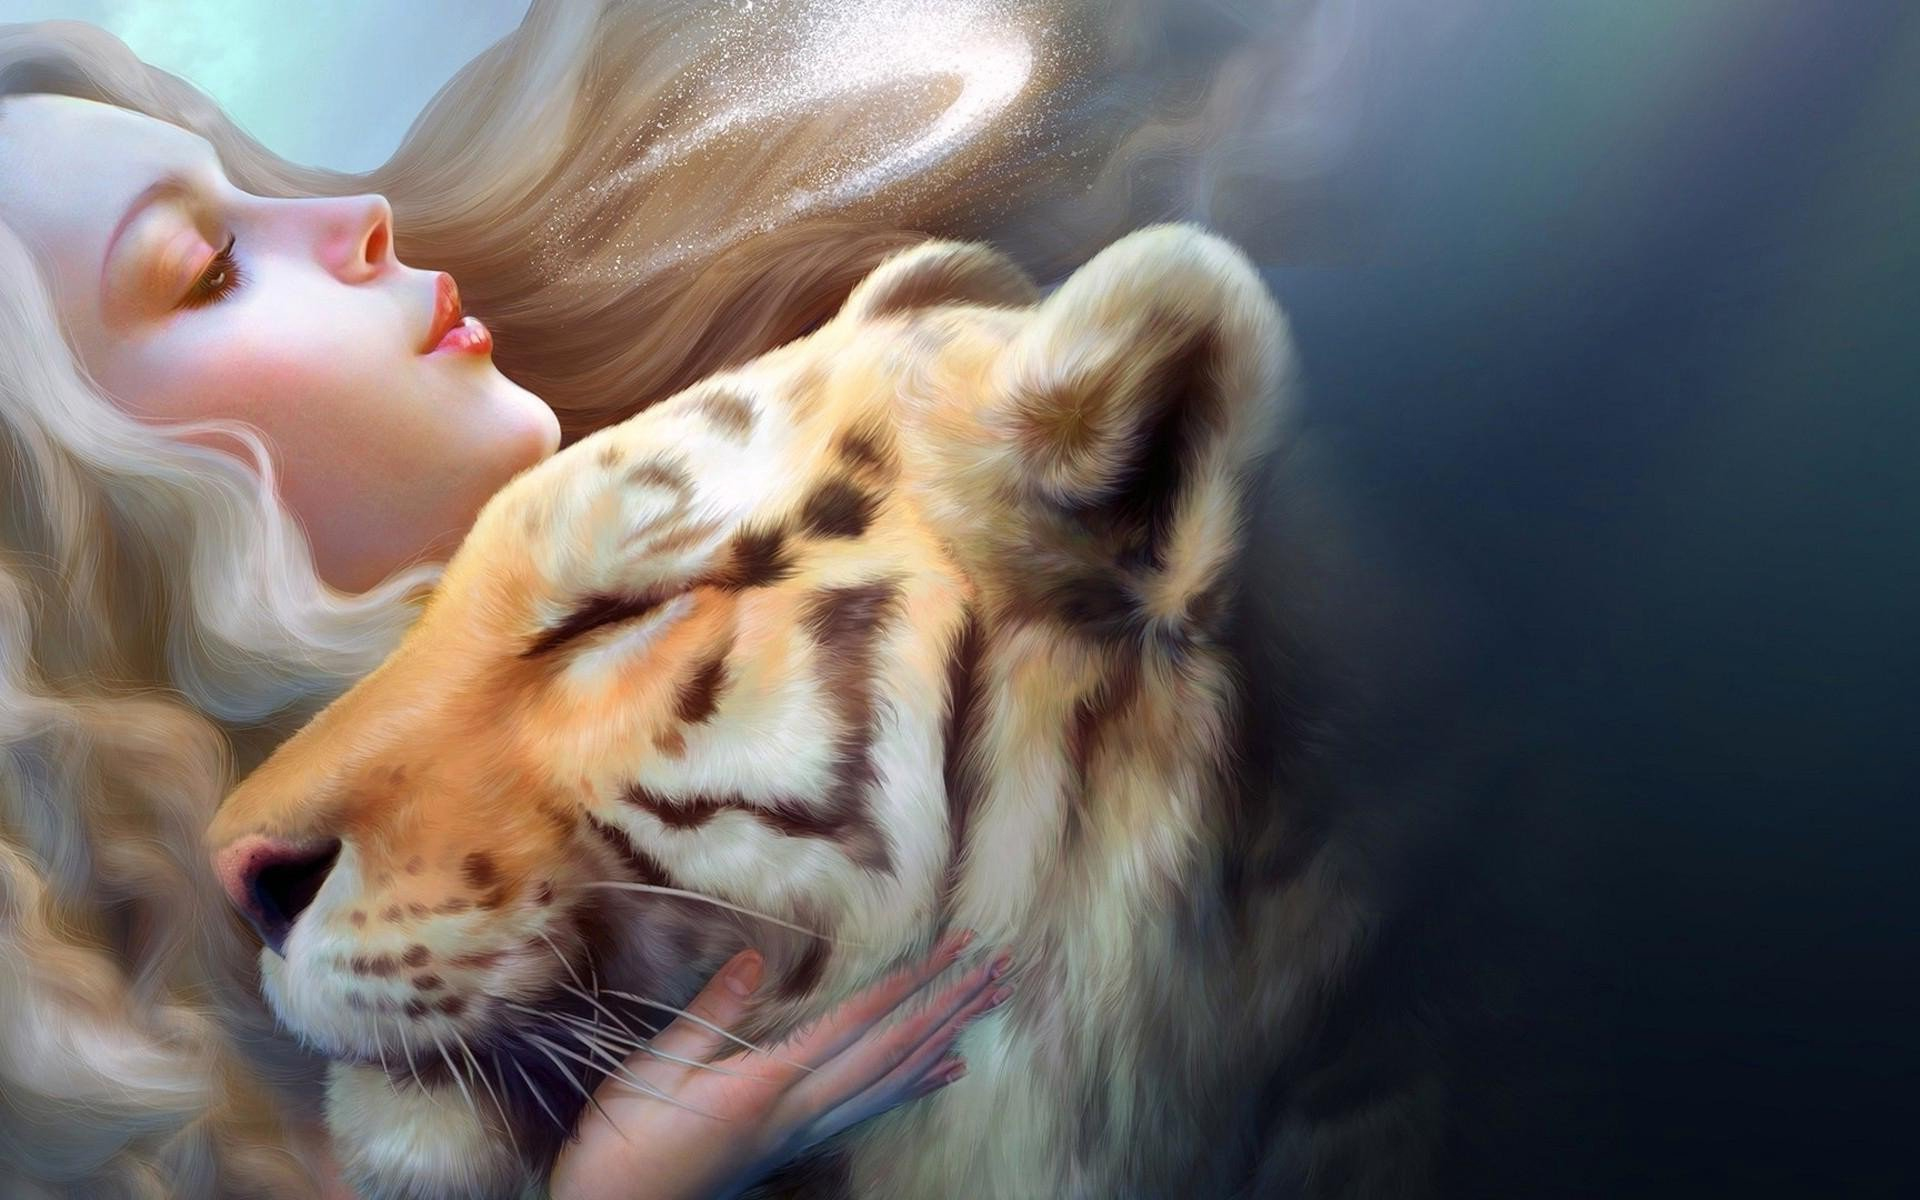 1360x768 girl tiger art laptop hd hd 4k wallpapers images girl tiger art laptop hd altavistaventures Image collections